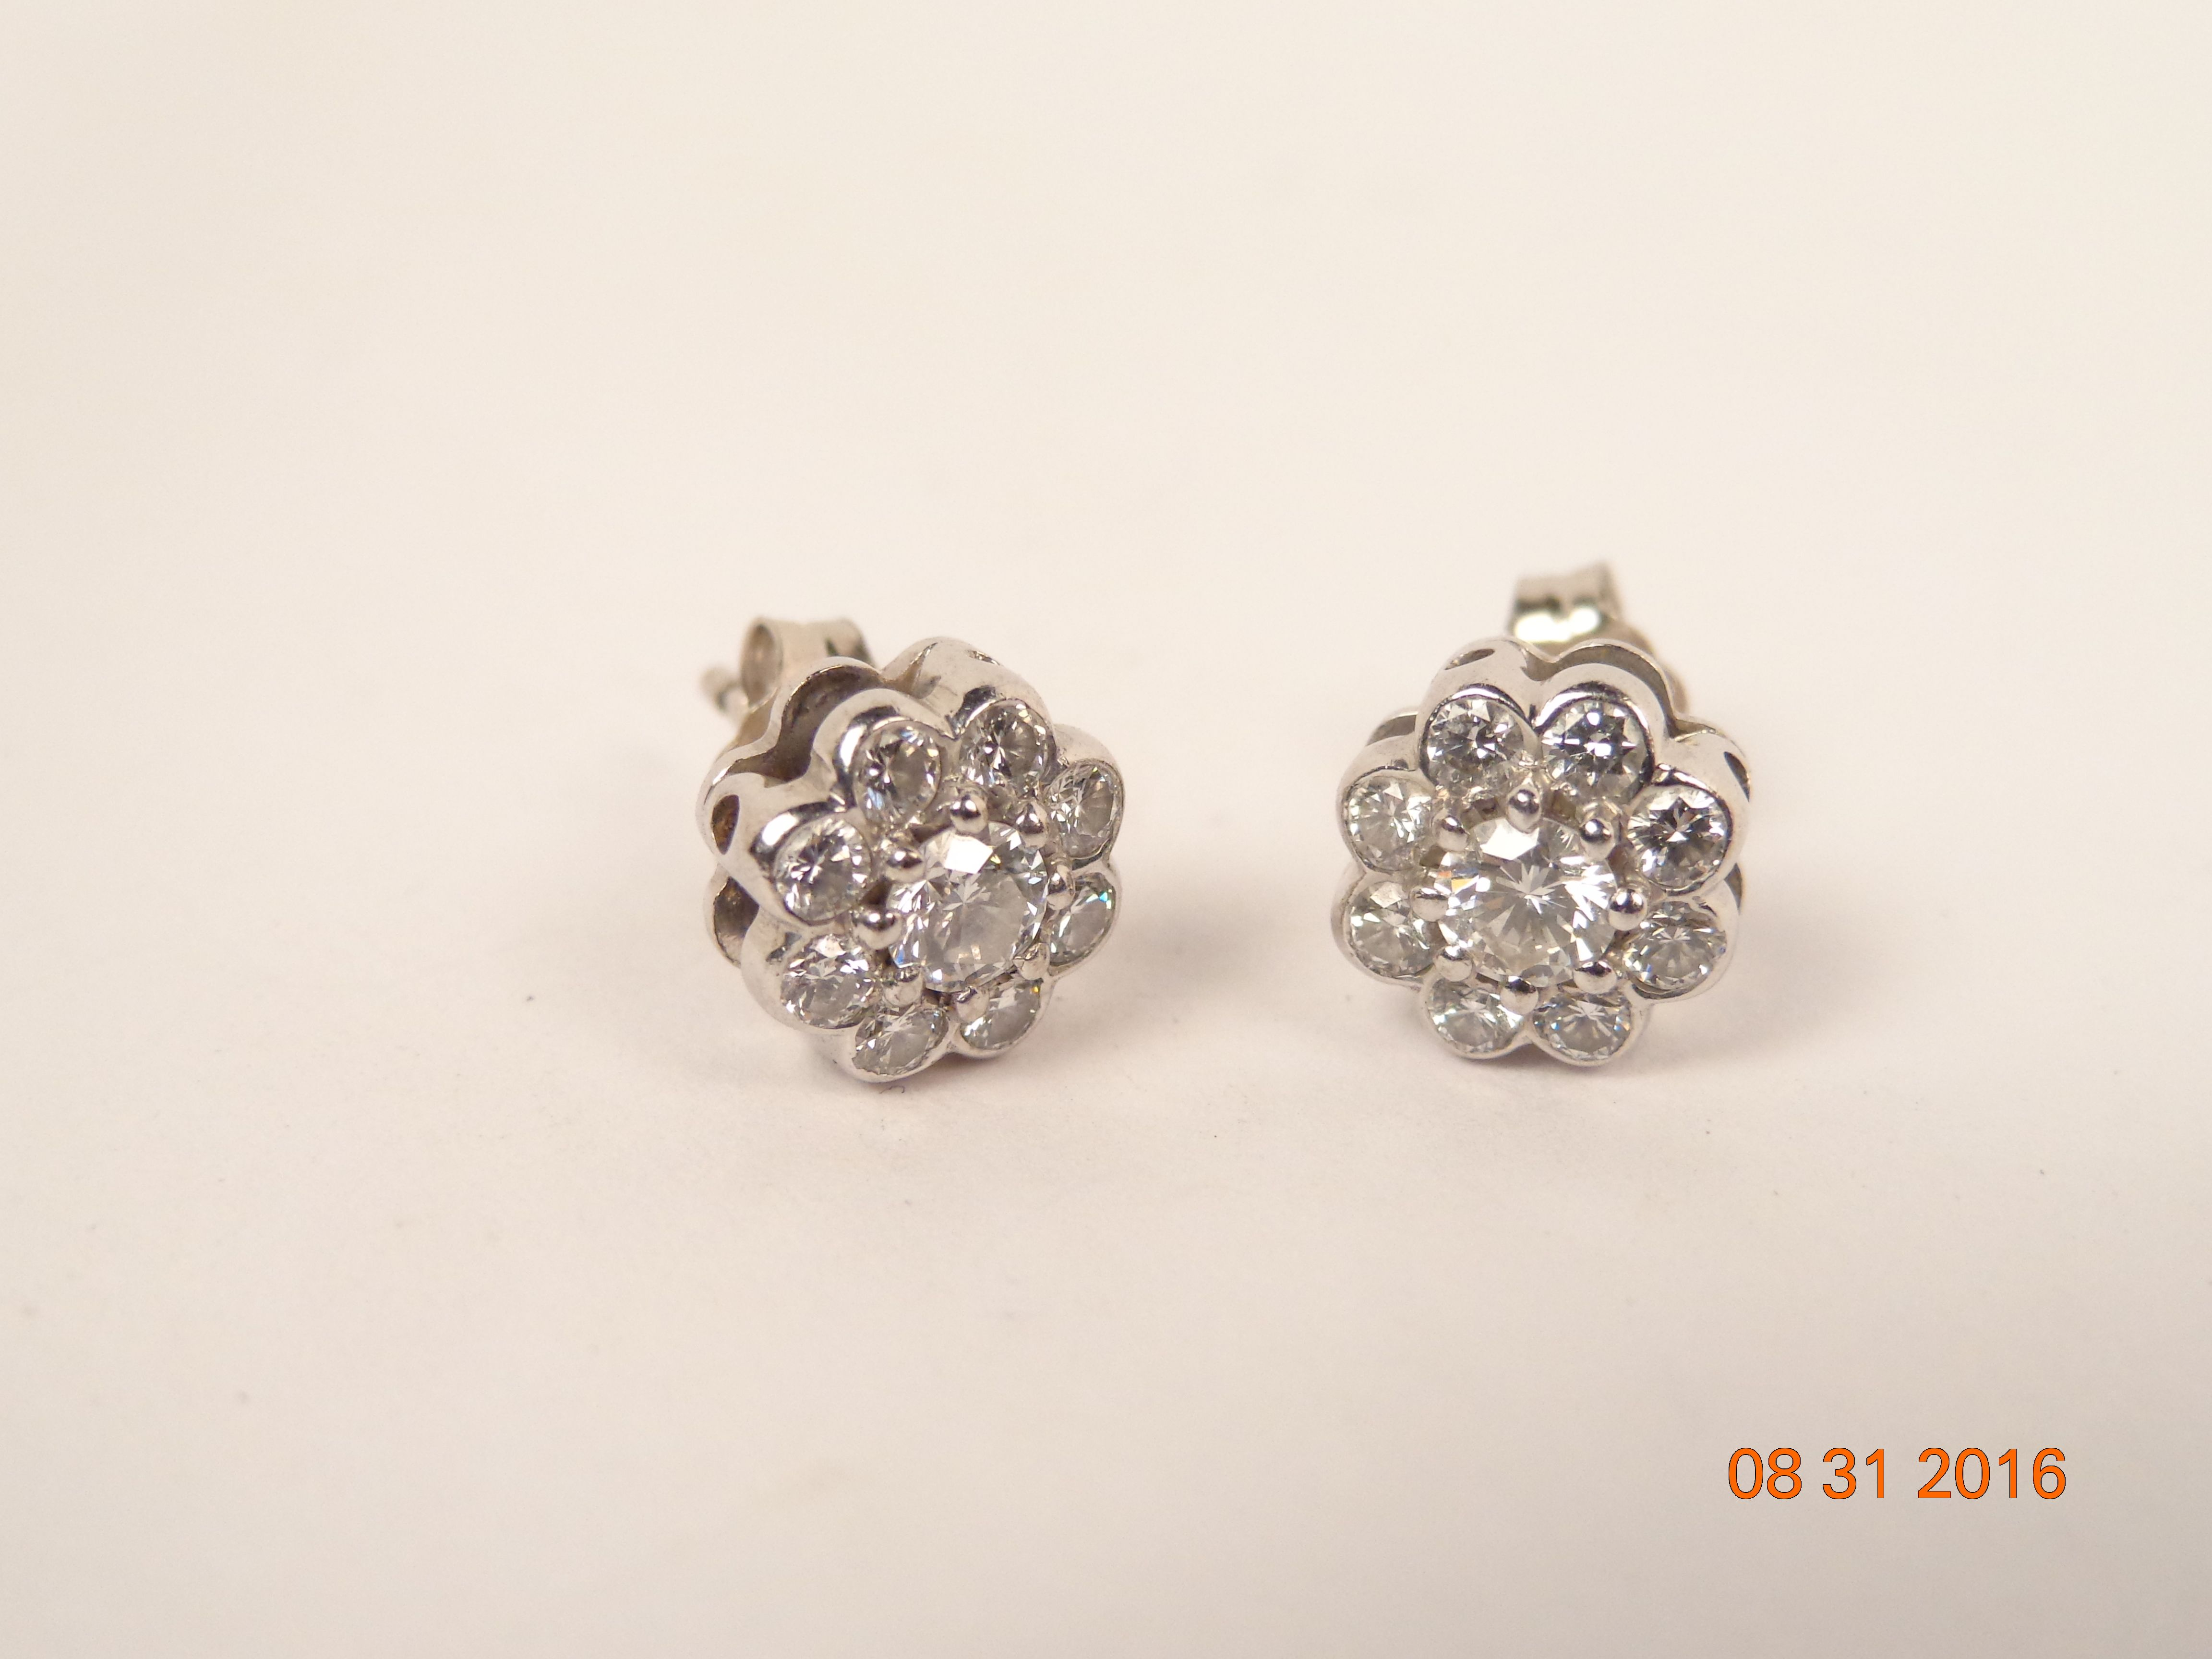 Plat Graff Diamond Flower Earrings About 50 Below Original Price Hhorwitz